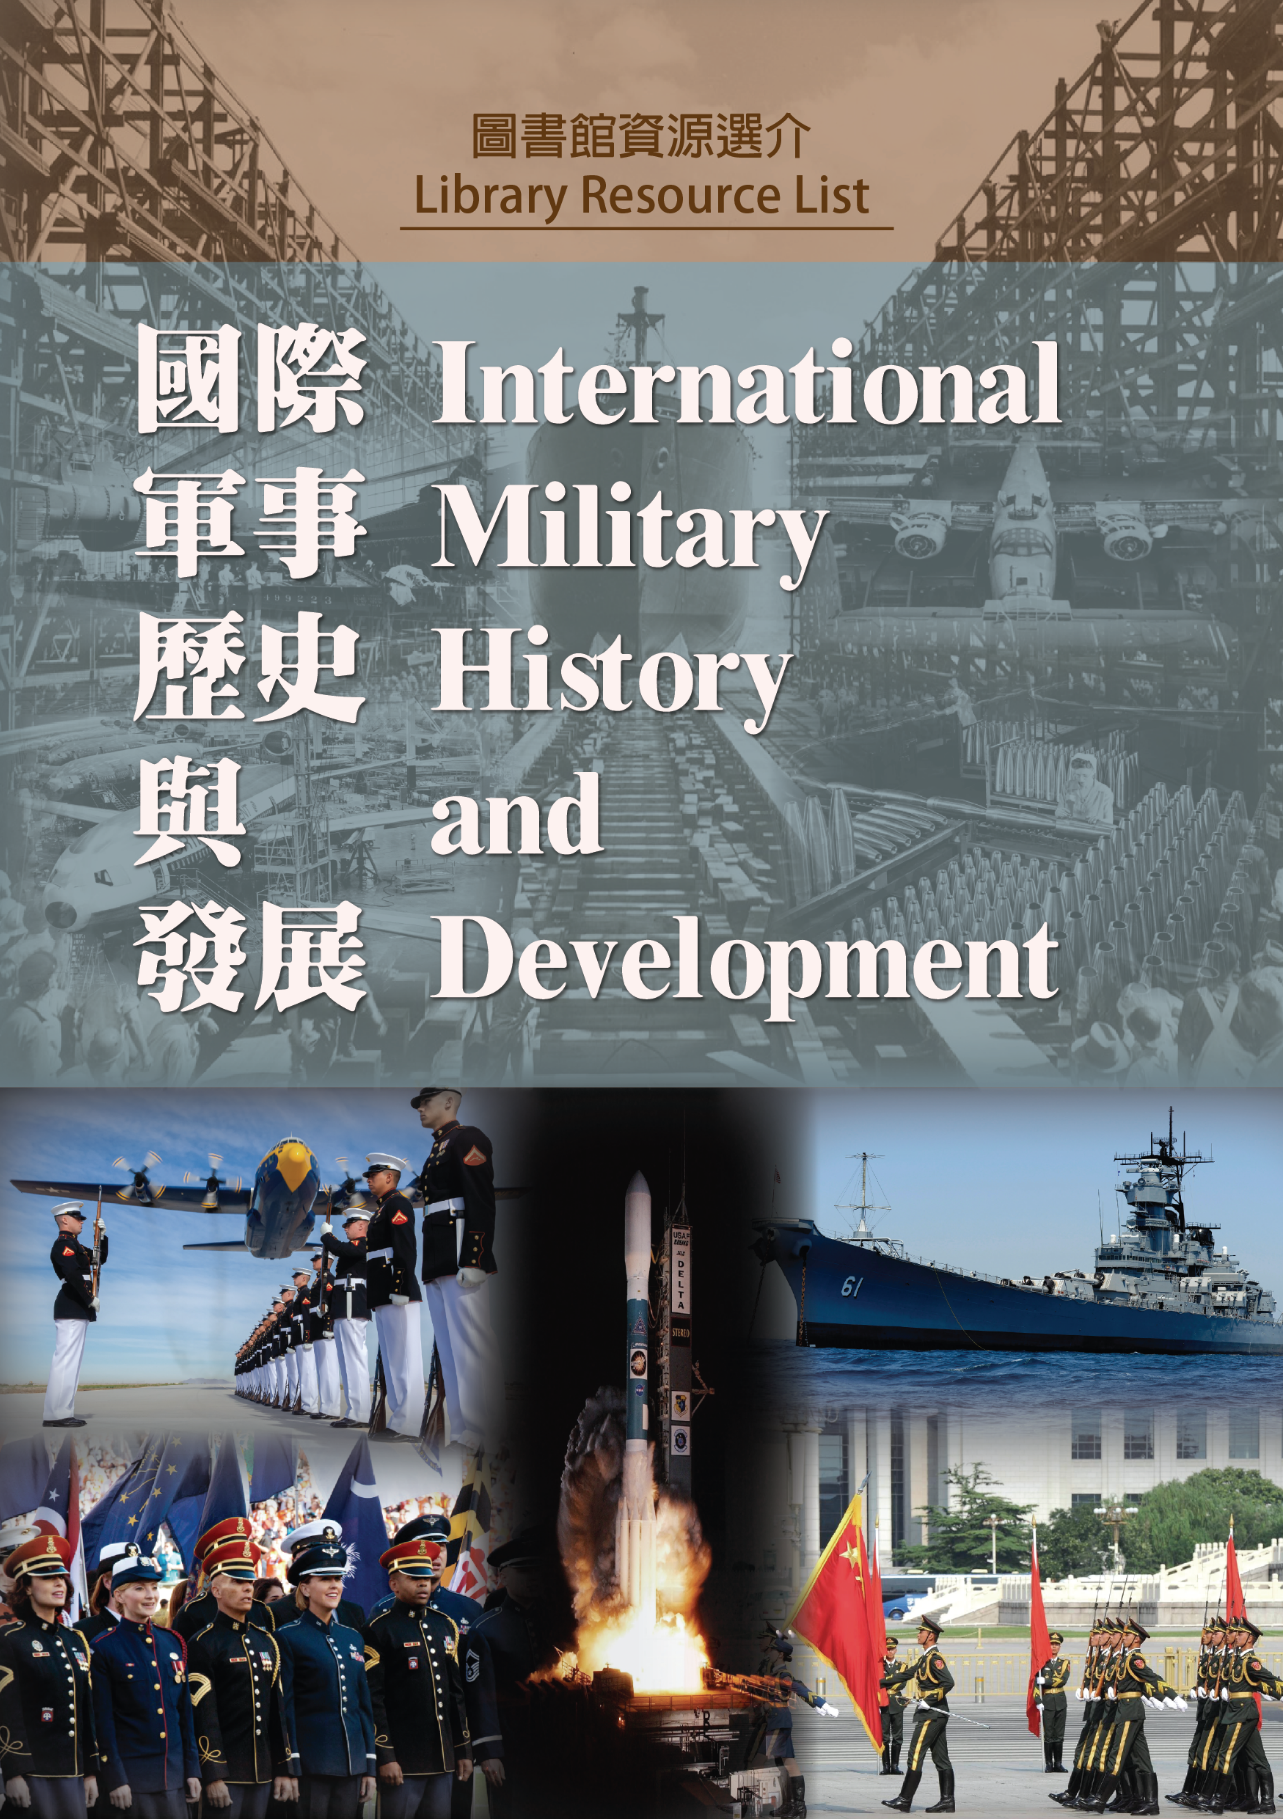 International Military History and Development